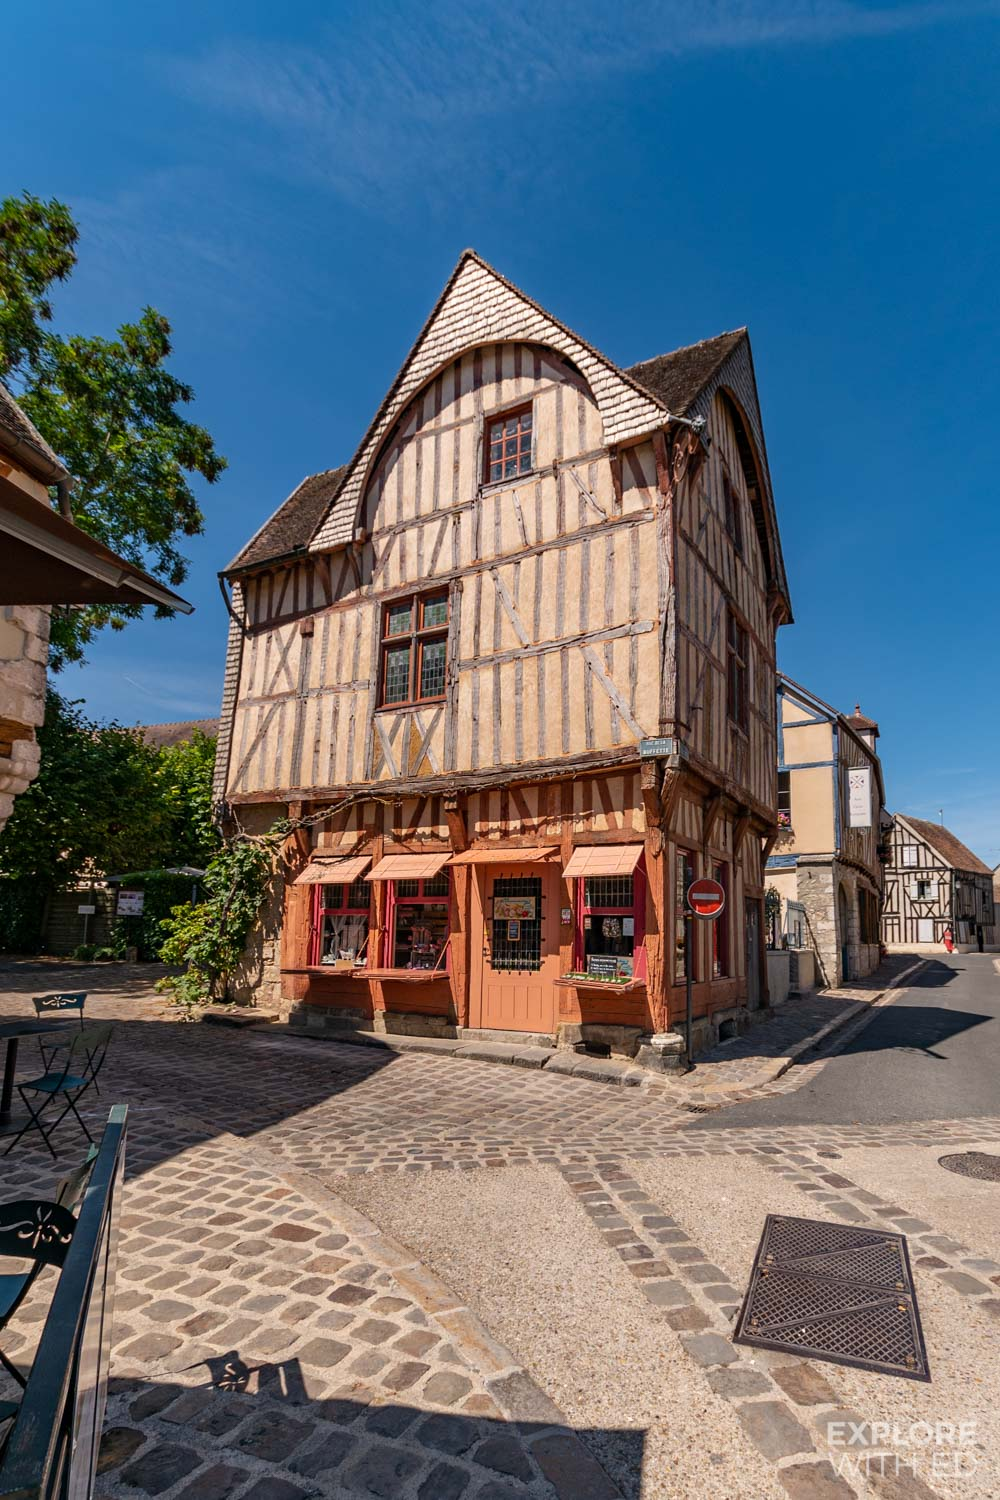 The Pretty UNESCO Town of Provins, France